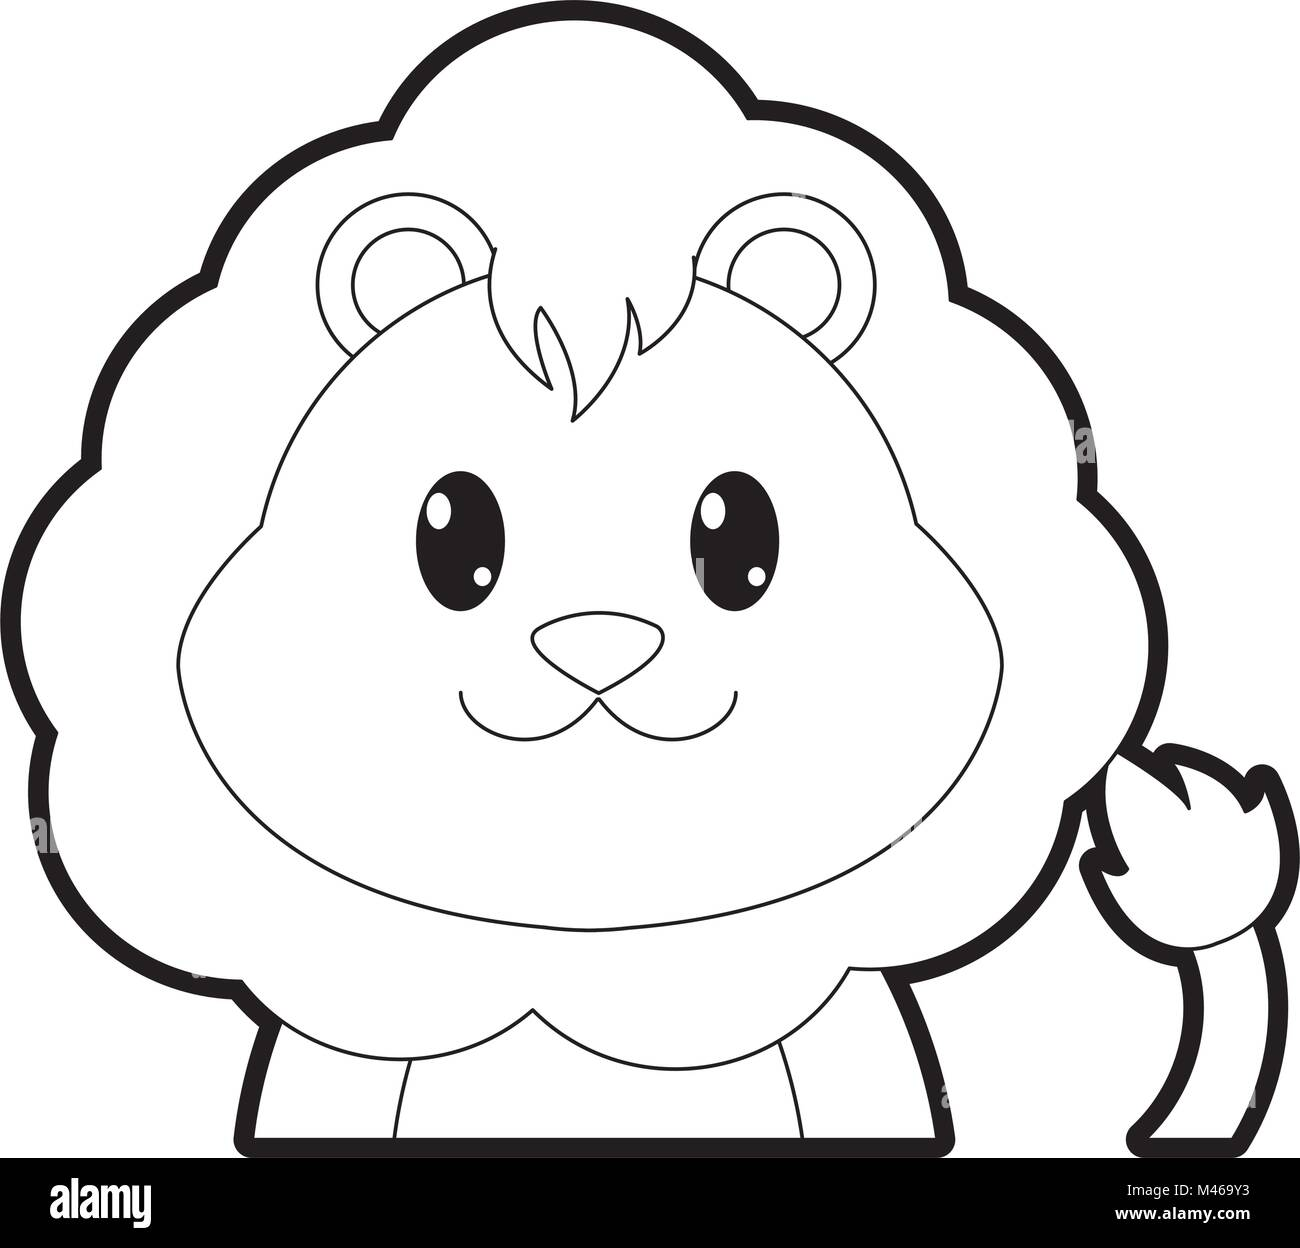 Cartoon Lion Animal Outline High Resolution Stock Photography And Images Alamy Animal outline for walrus vector. https www alamy com stock photo outline adorable lion cute animal character 174701831 html